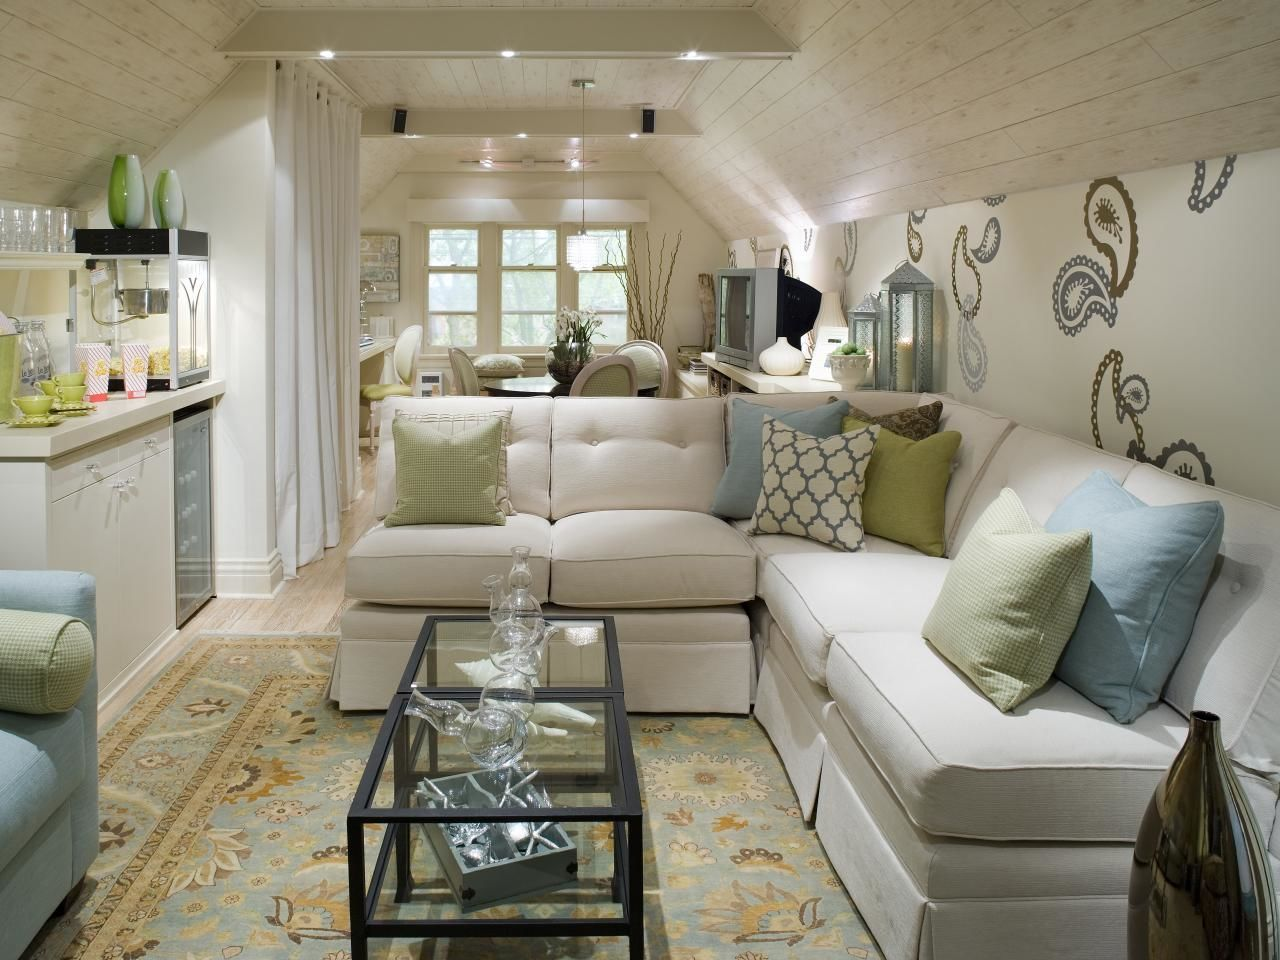 top rooms to go sectional sofas collection-Incredible Rooms to Go Sectional sofas Décor